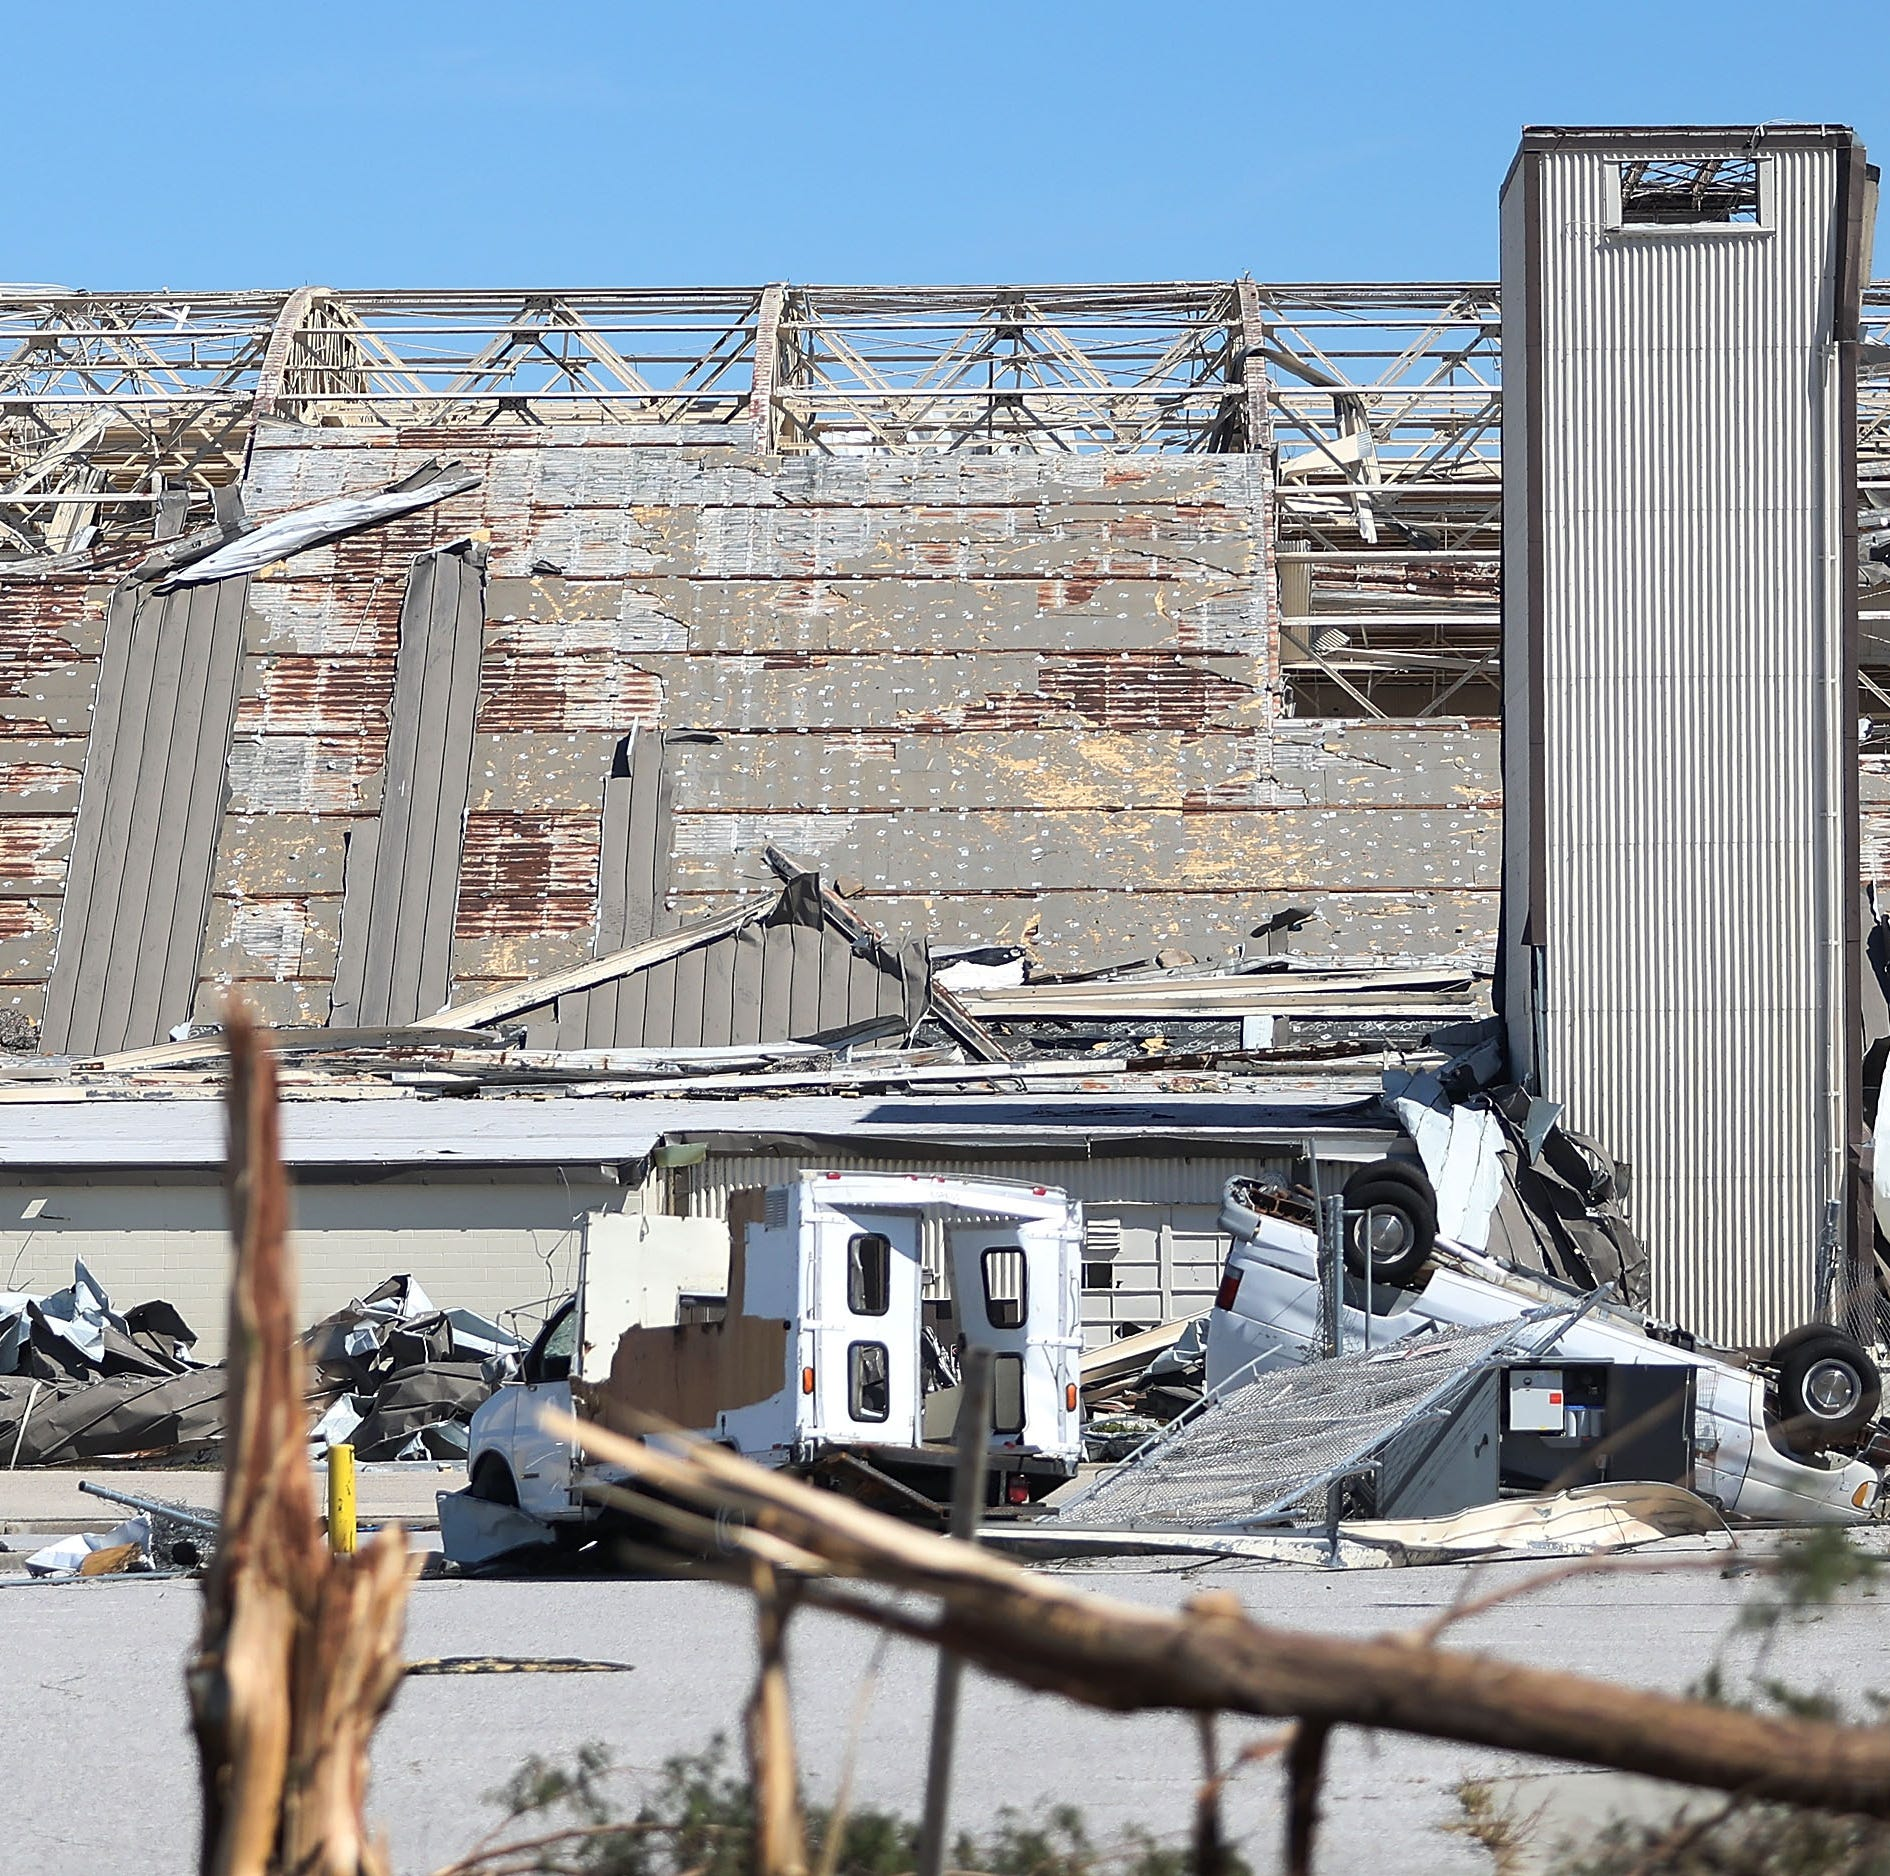 Fate of Tyndall Air Force Base F-22 Raptors still unknown post-Hurricane Michael